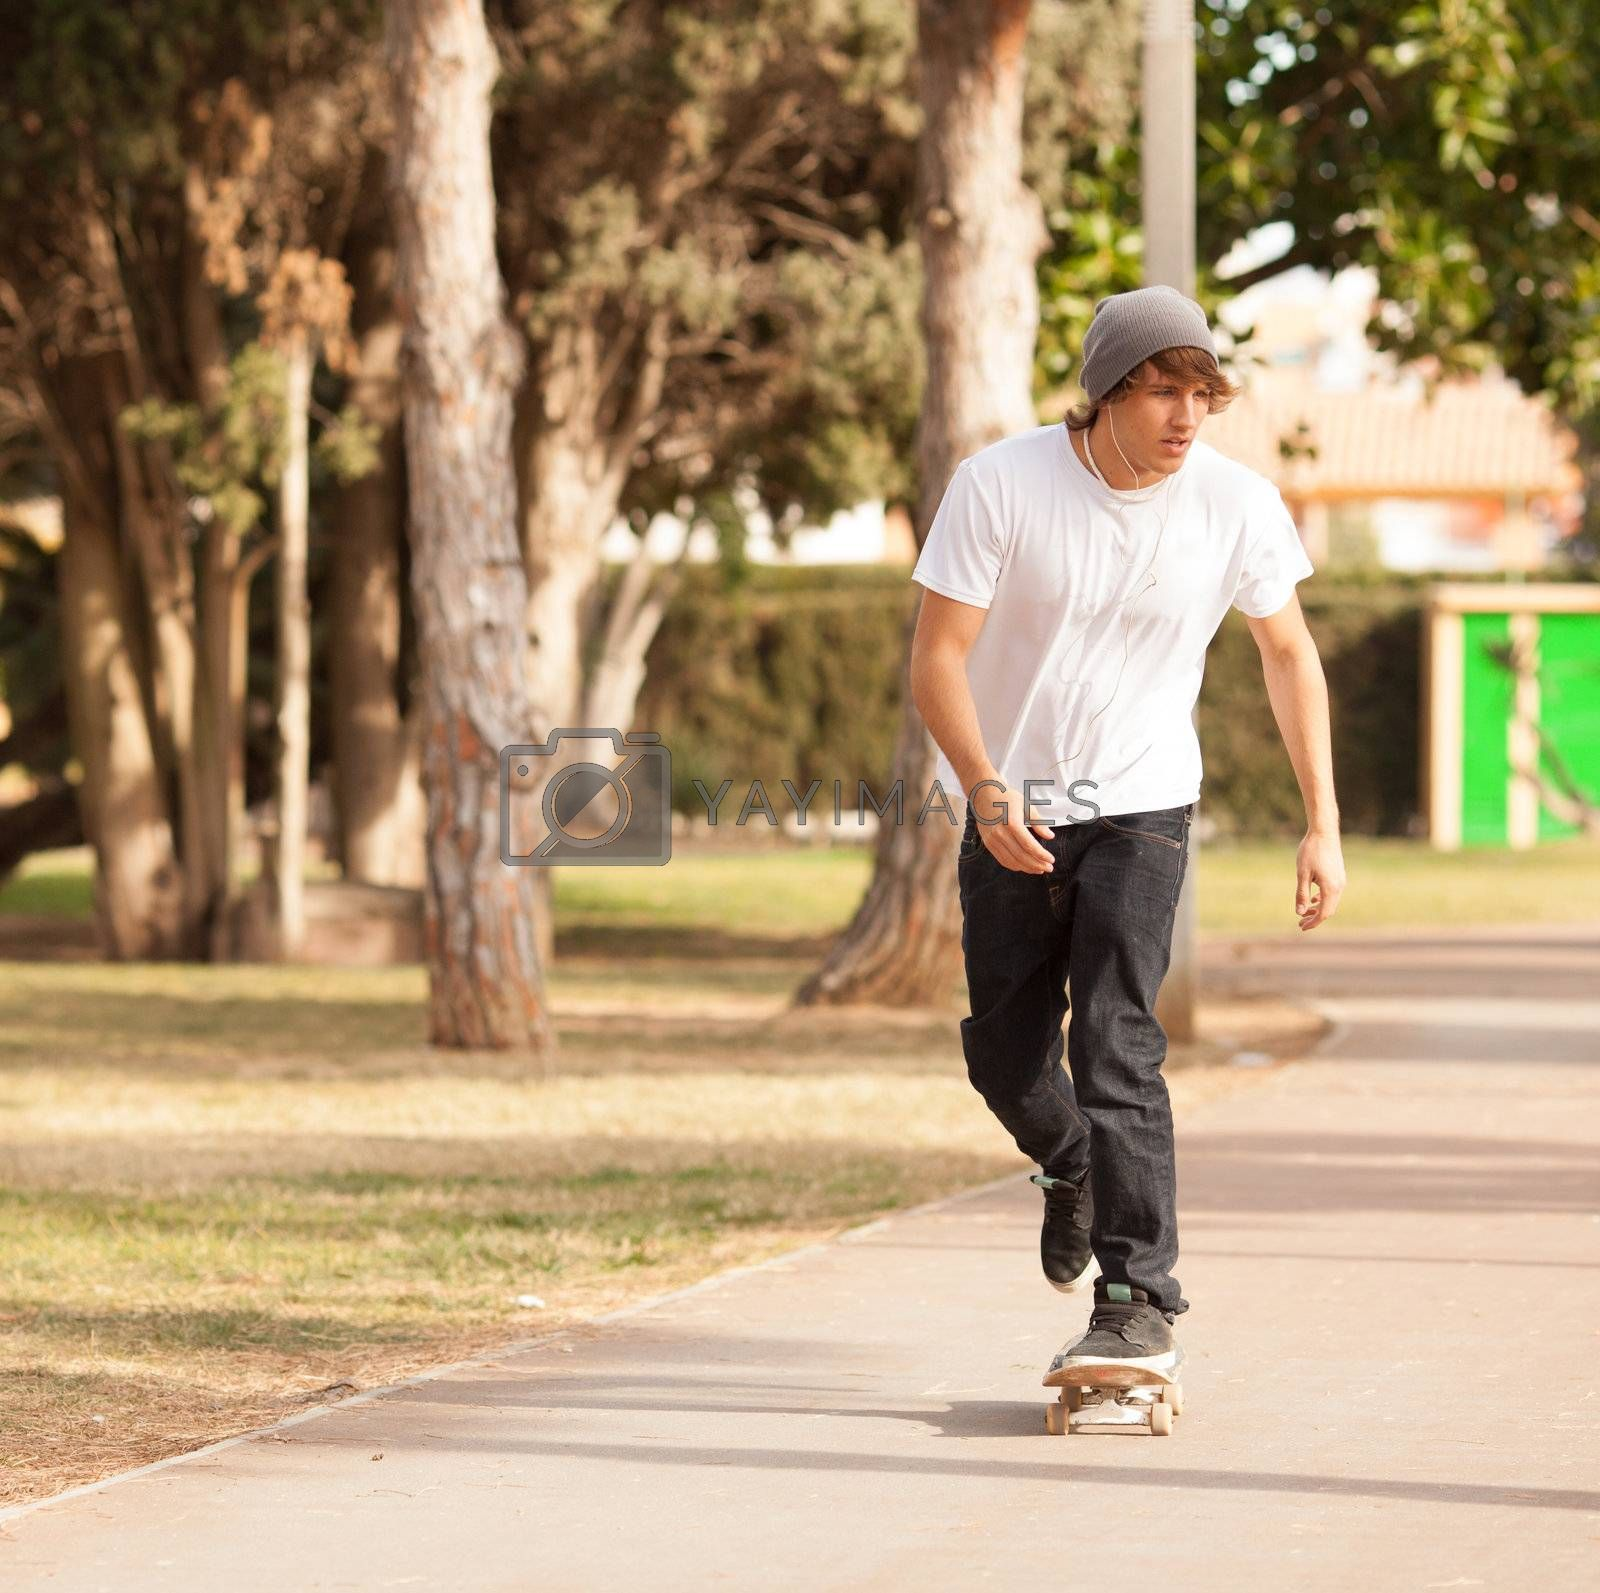 Royalty free image of young skater rolling down the street by Lcrespi